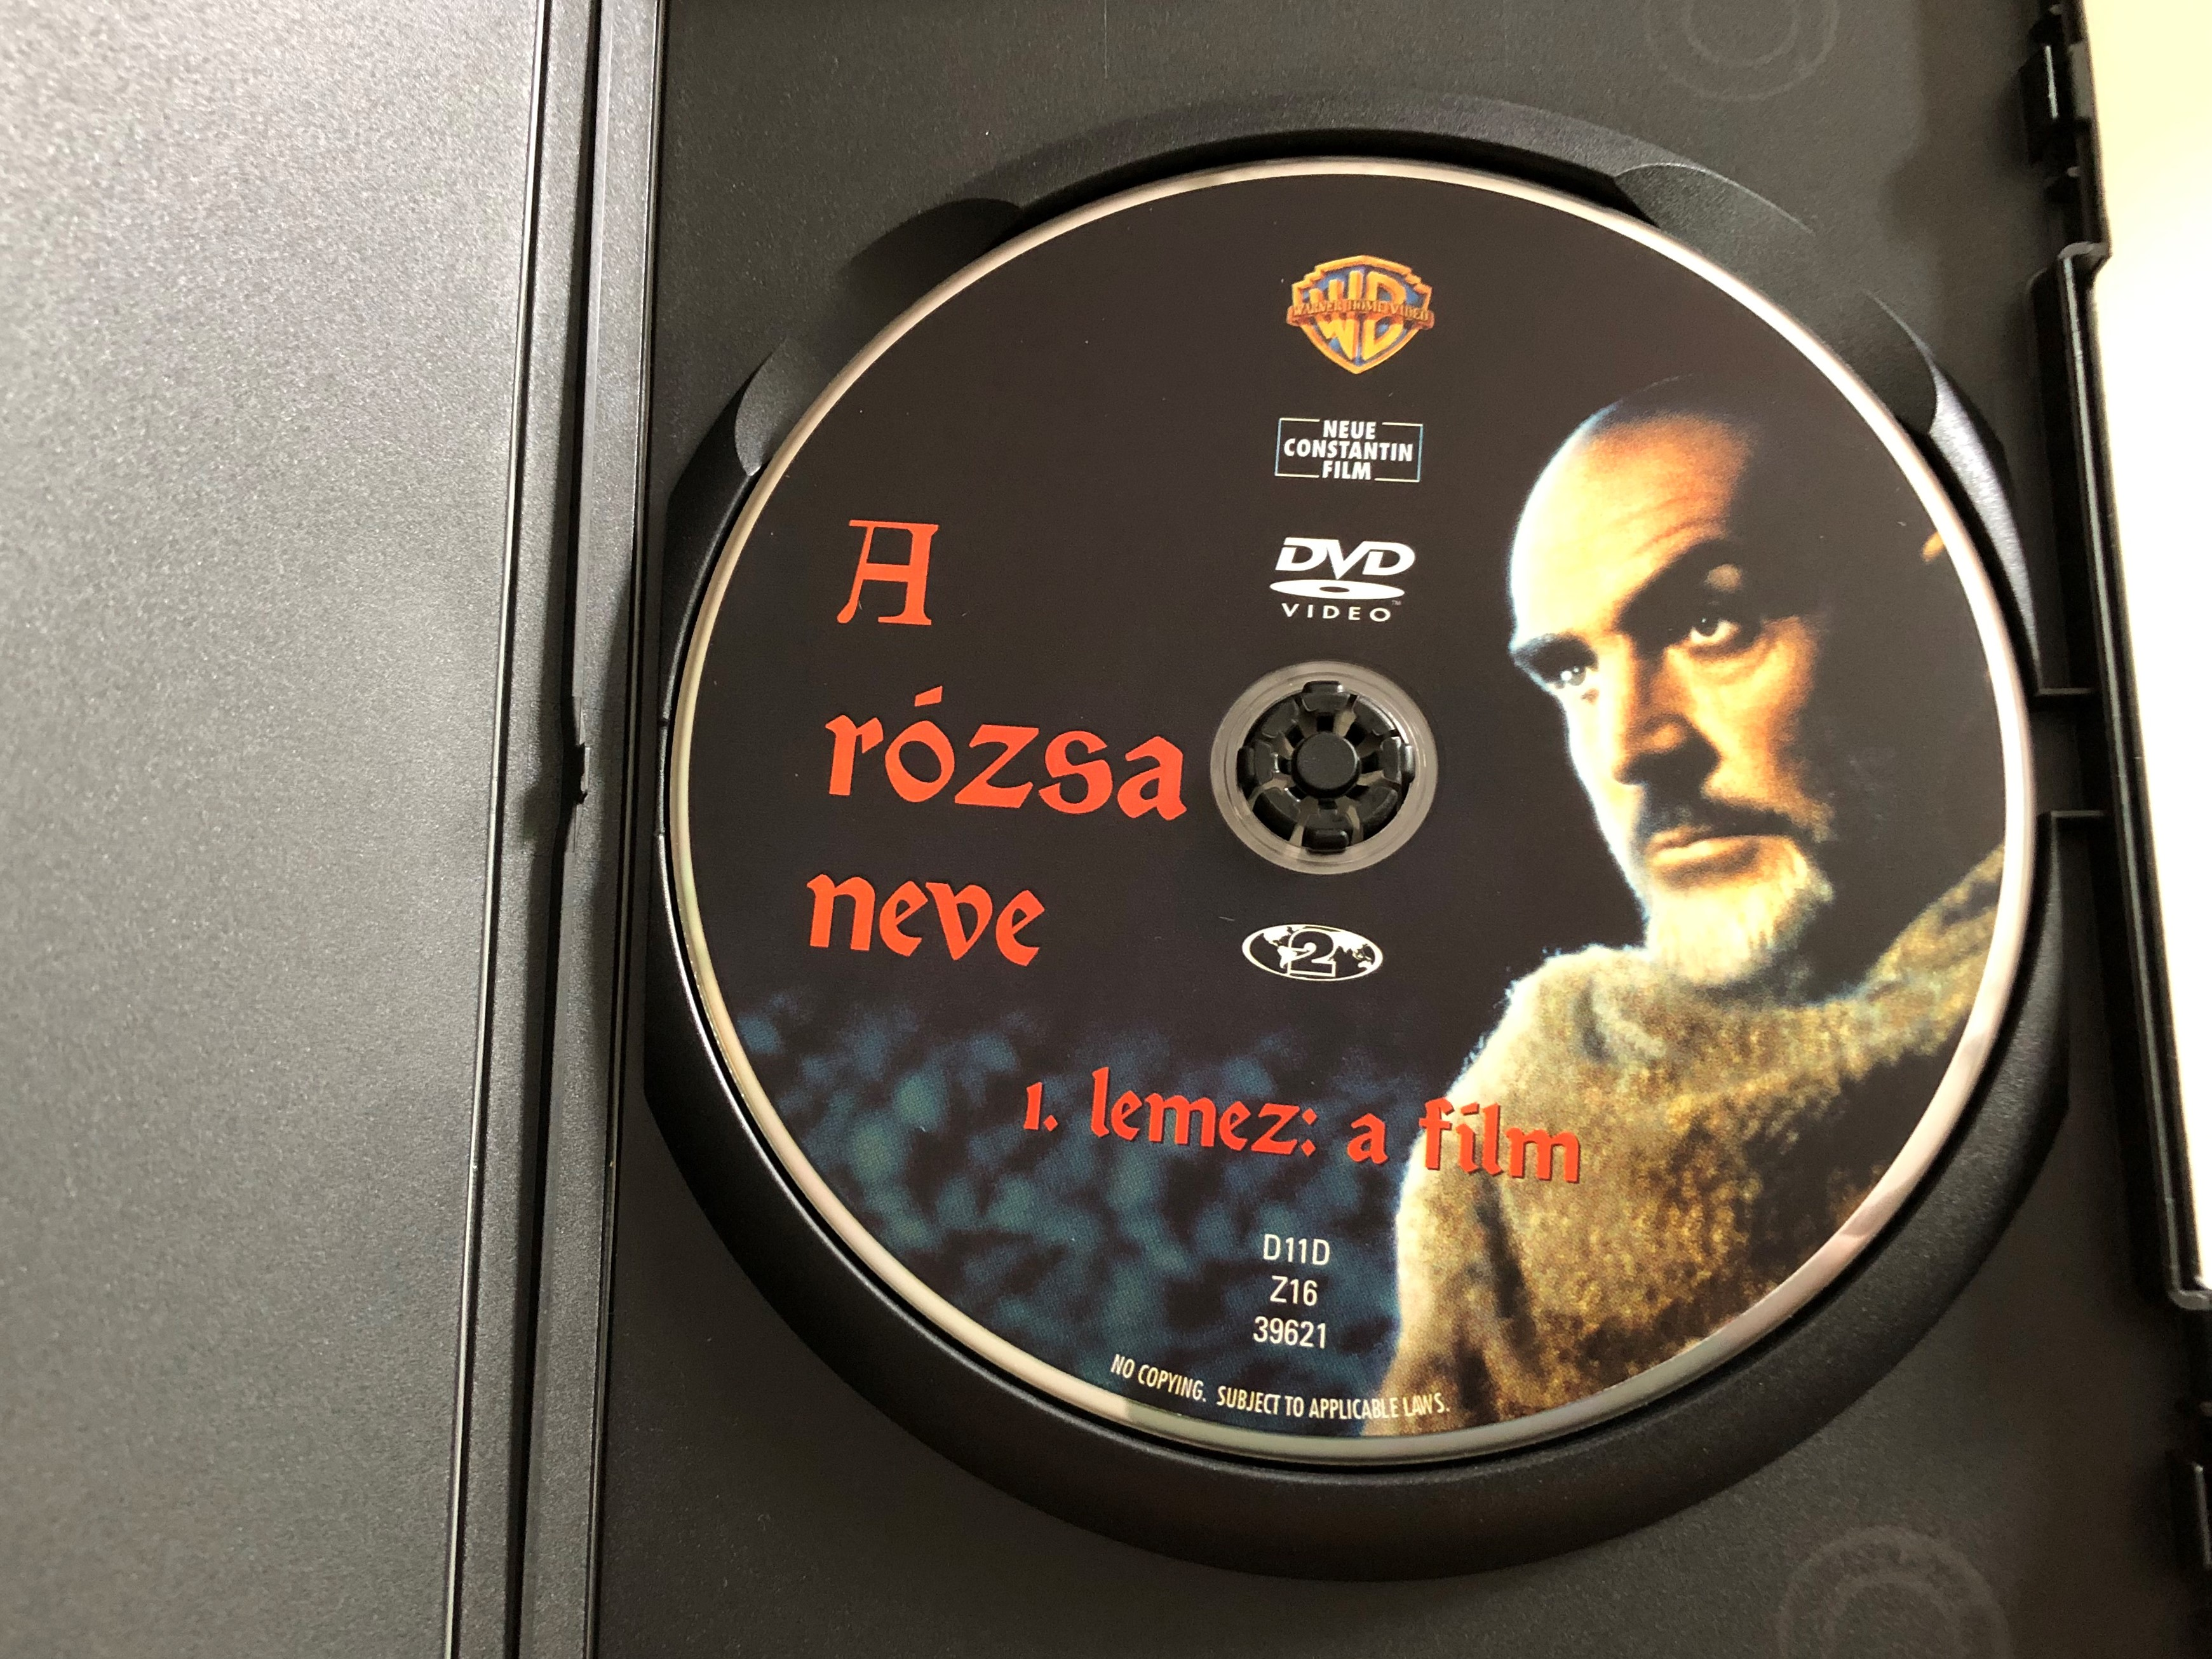 the-name-of-the-rose-dvd-1986-a-r-zsa-neve-directed-by-jean-jacques-annaud-starring-sean-connery-f.-murray-abraham-feodor-chaliapin-jr.-based-on-umberto-eco-s-novel-4-.jpg